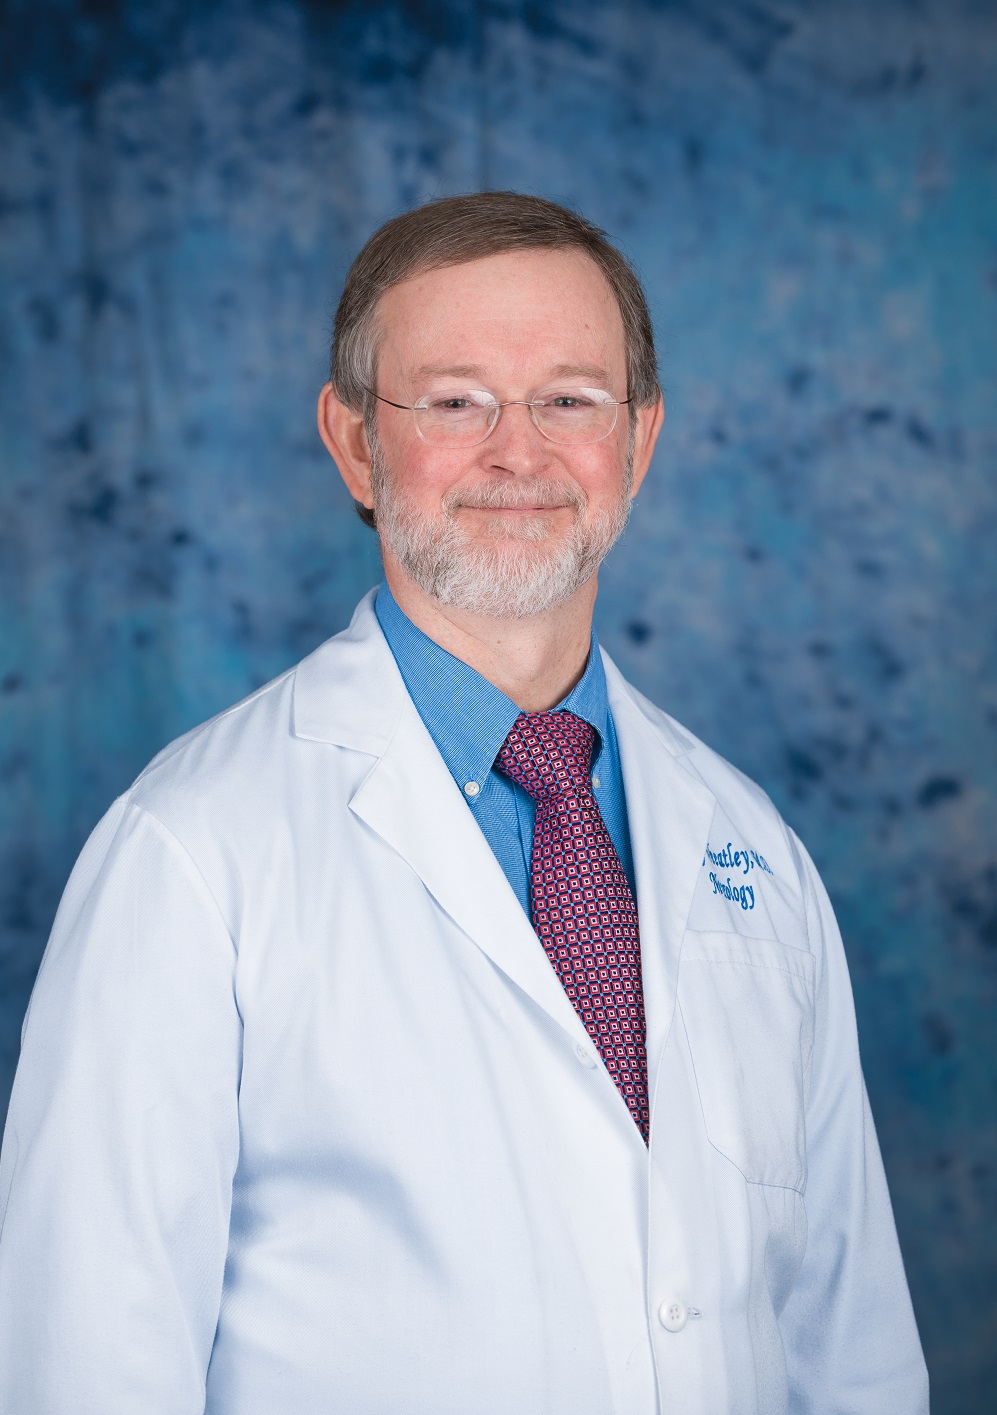 Gregory Wheatley, MD of Knoxville Neurology Specialists